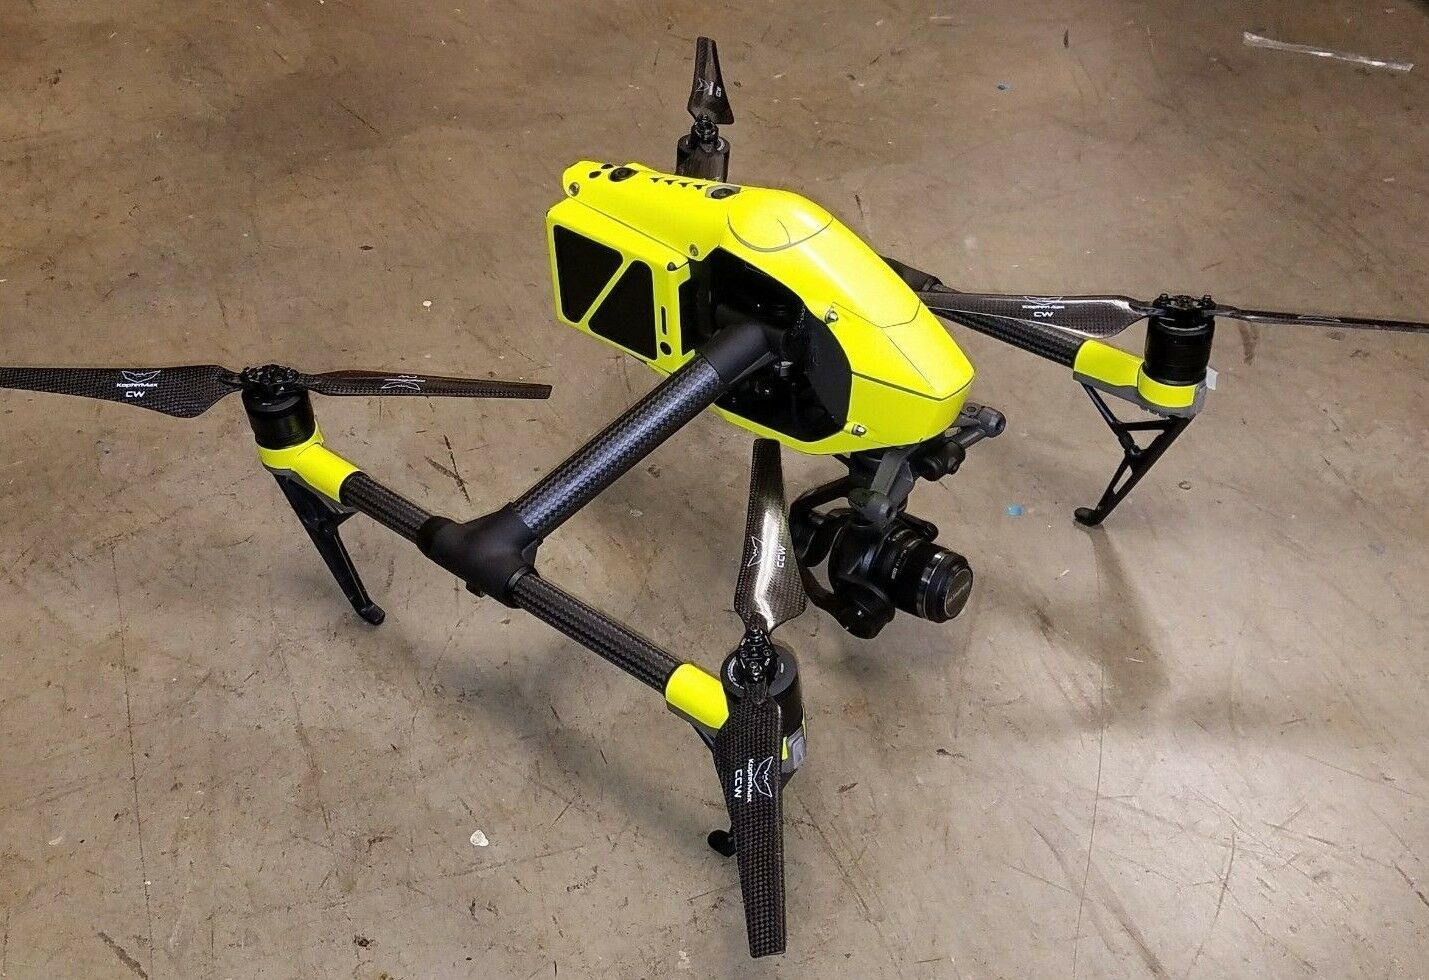 DJI Inspire 2 Fluorescent Hi-Glow Yellow  vinyl skin   wrap   decal, UK made